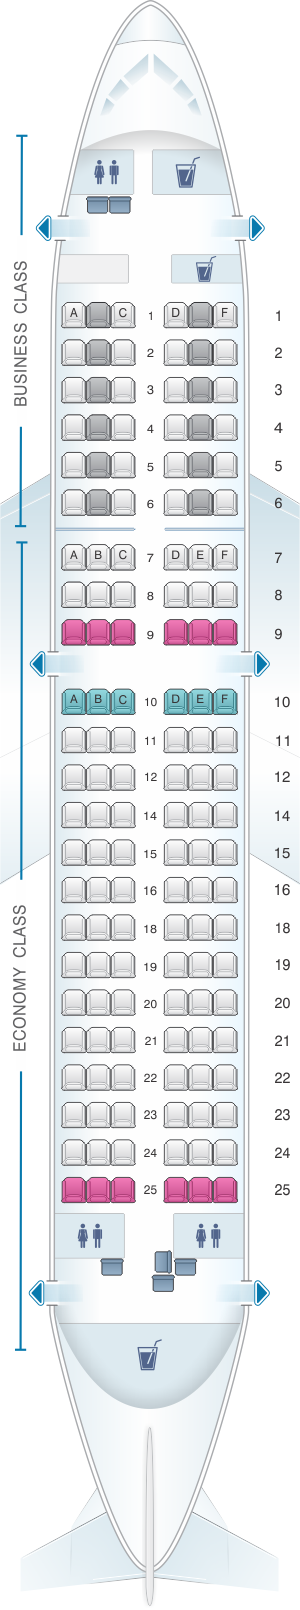 Seat map for Lufthansa Airbus A319